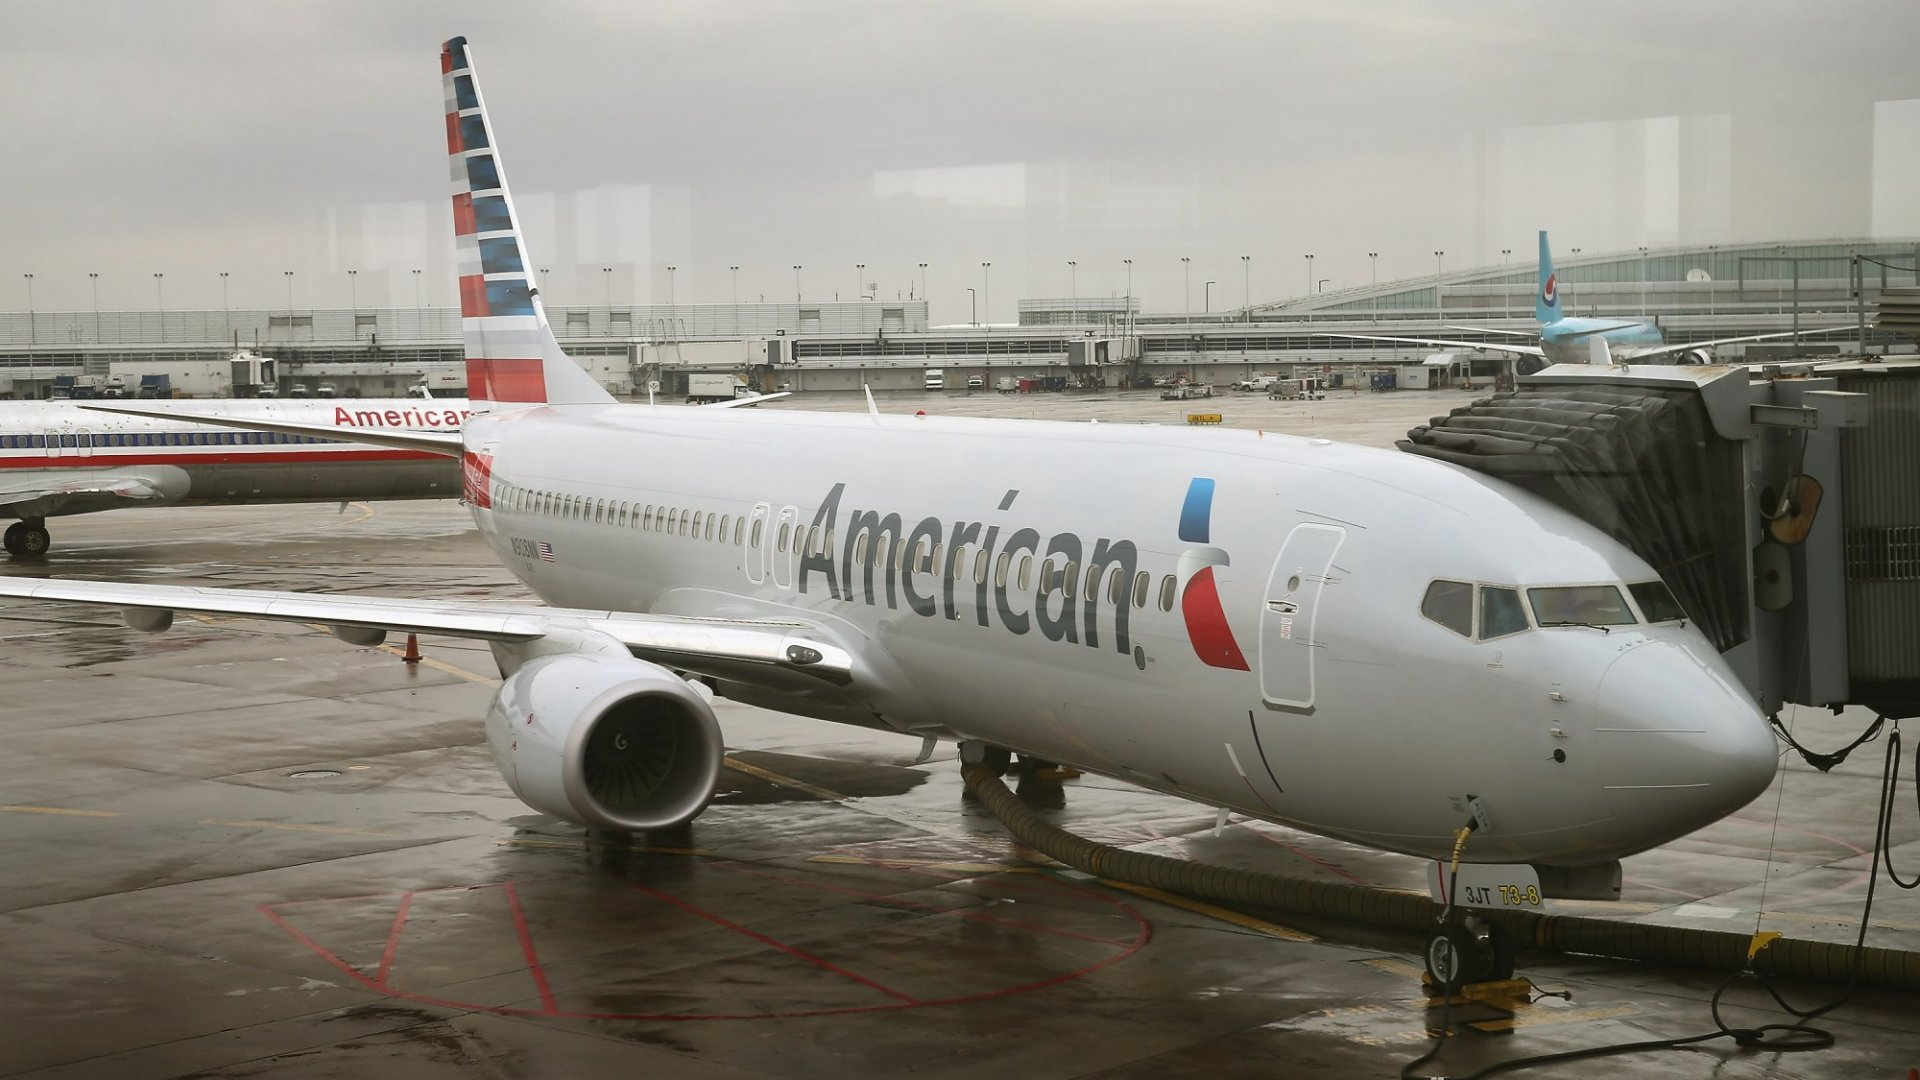 American Airlines: Your Emotional Support Goat Was Just Banned (But Fortunately Your Mini Horse Is OK)